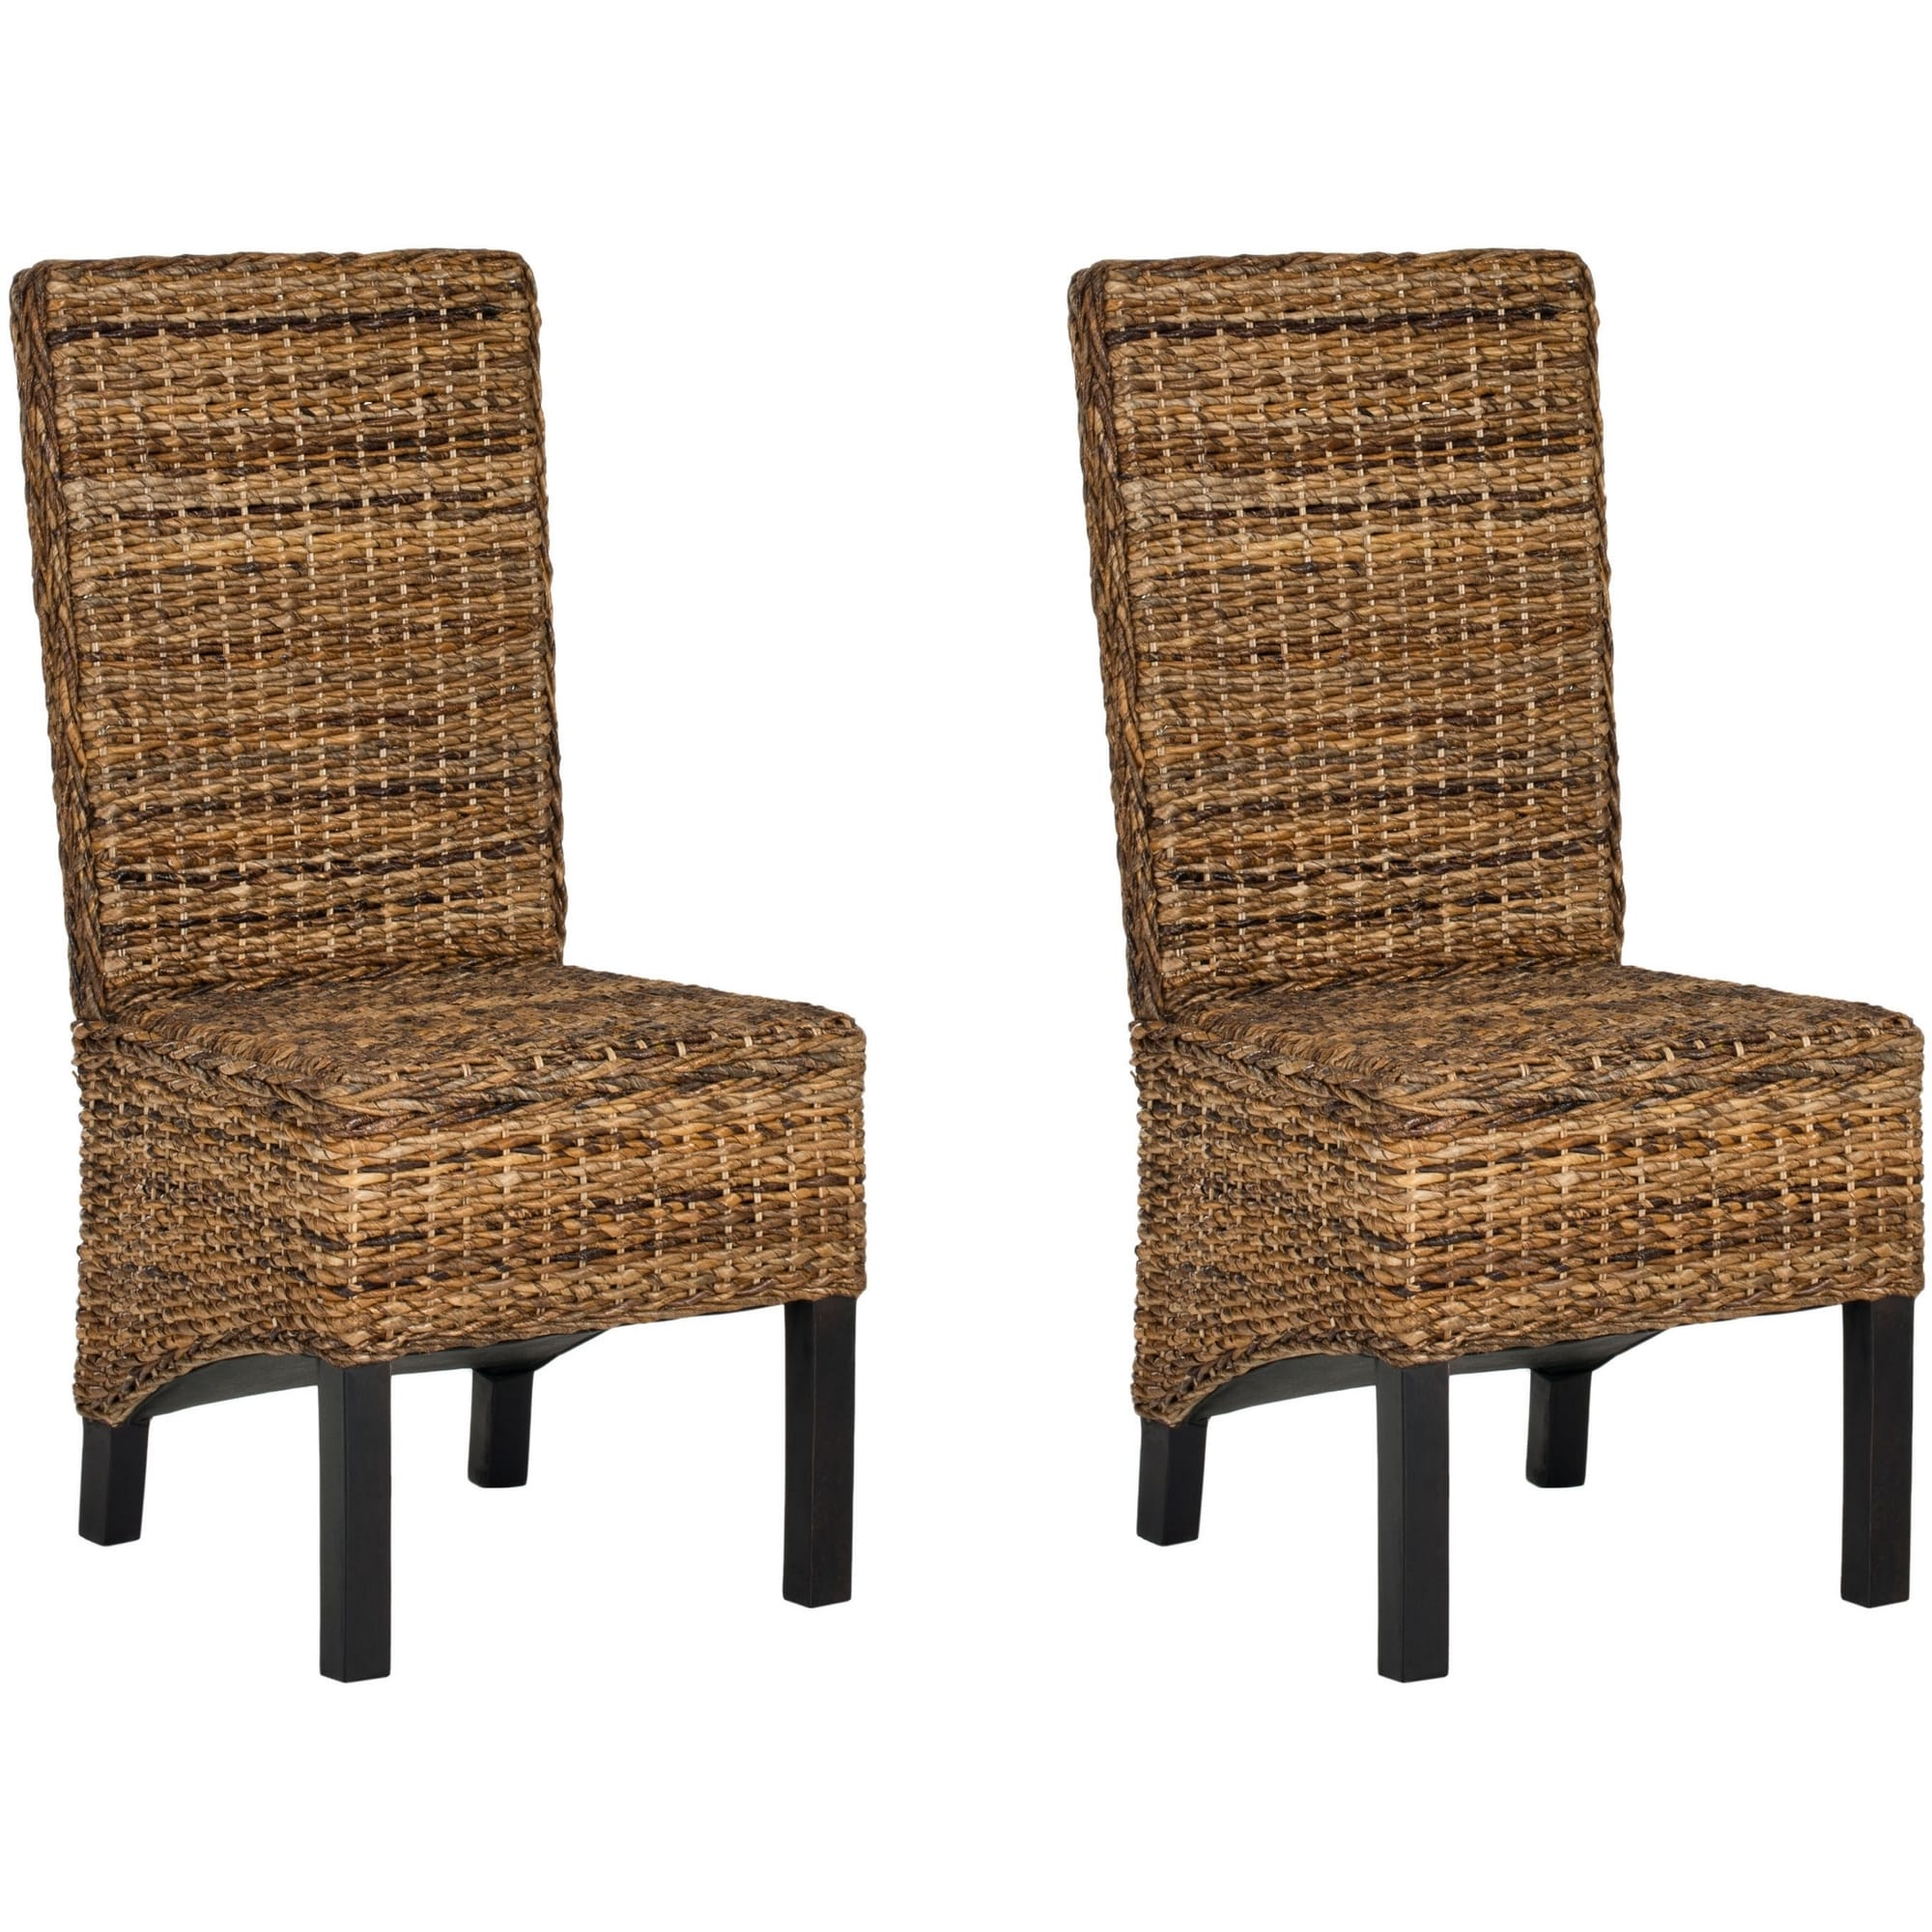 Safavieh Pembrooke Natural Wicker Side Chairs (Set of 2) at Sears.com